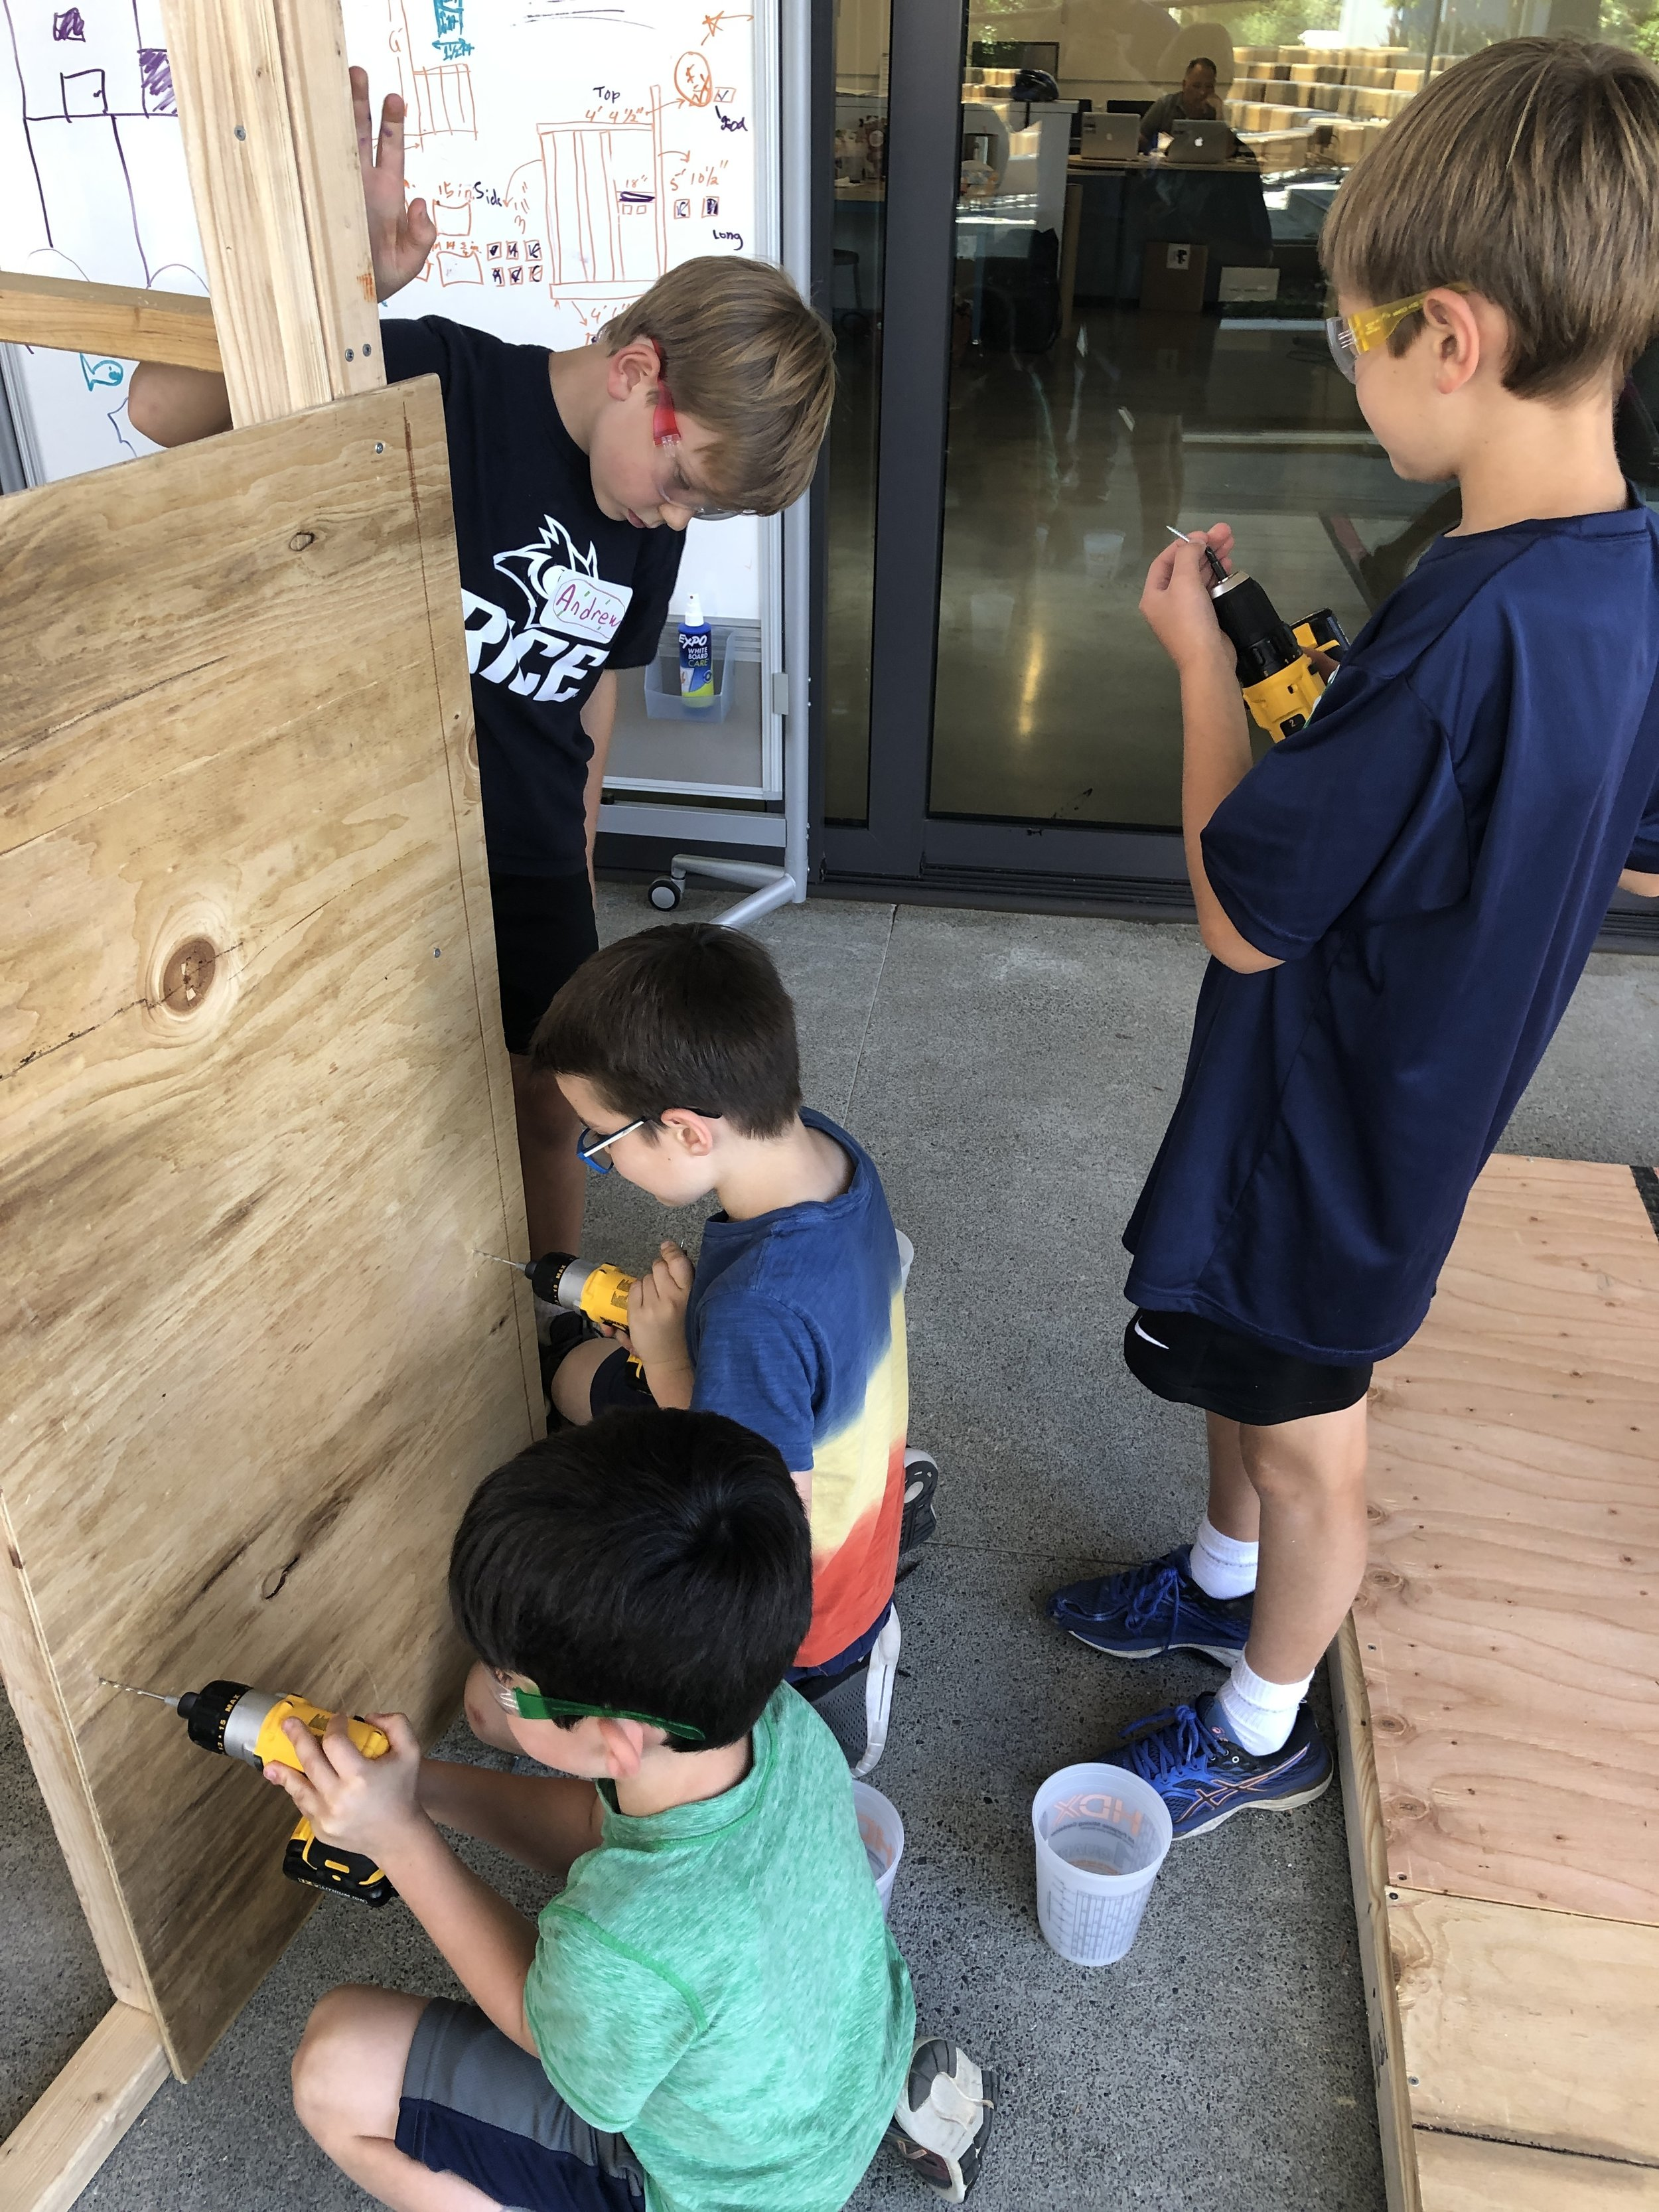 Everybody is helping to attach plywood to the walls